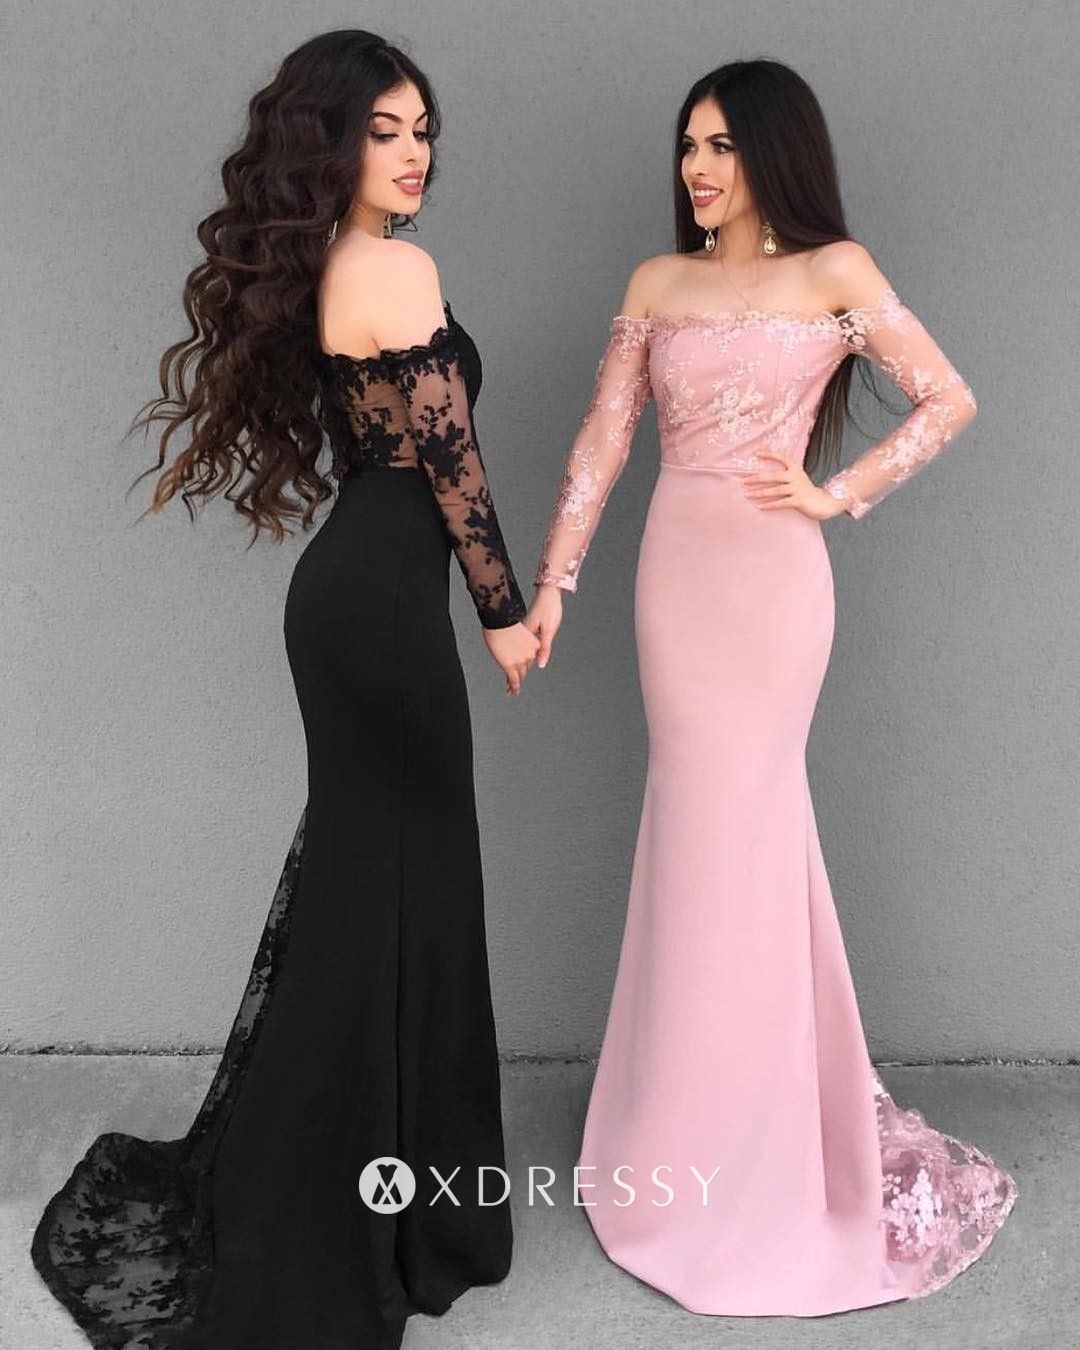 Illusion Lace Off Shoulder Long Sleeve Prom Dress In 2020 Long Sleeve Dress Formal Prom Dresses Long With Sleeves Prom Dresses With Sleeves